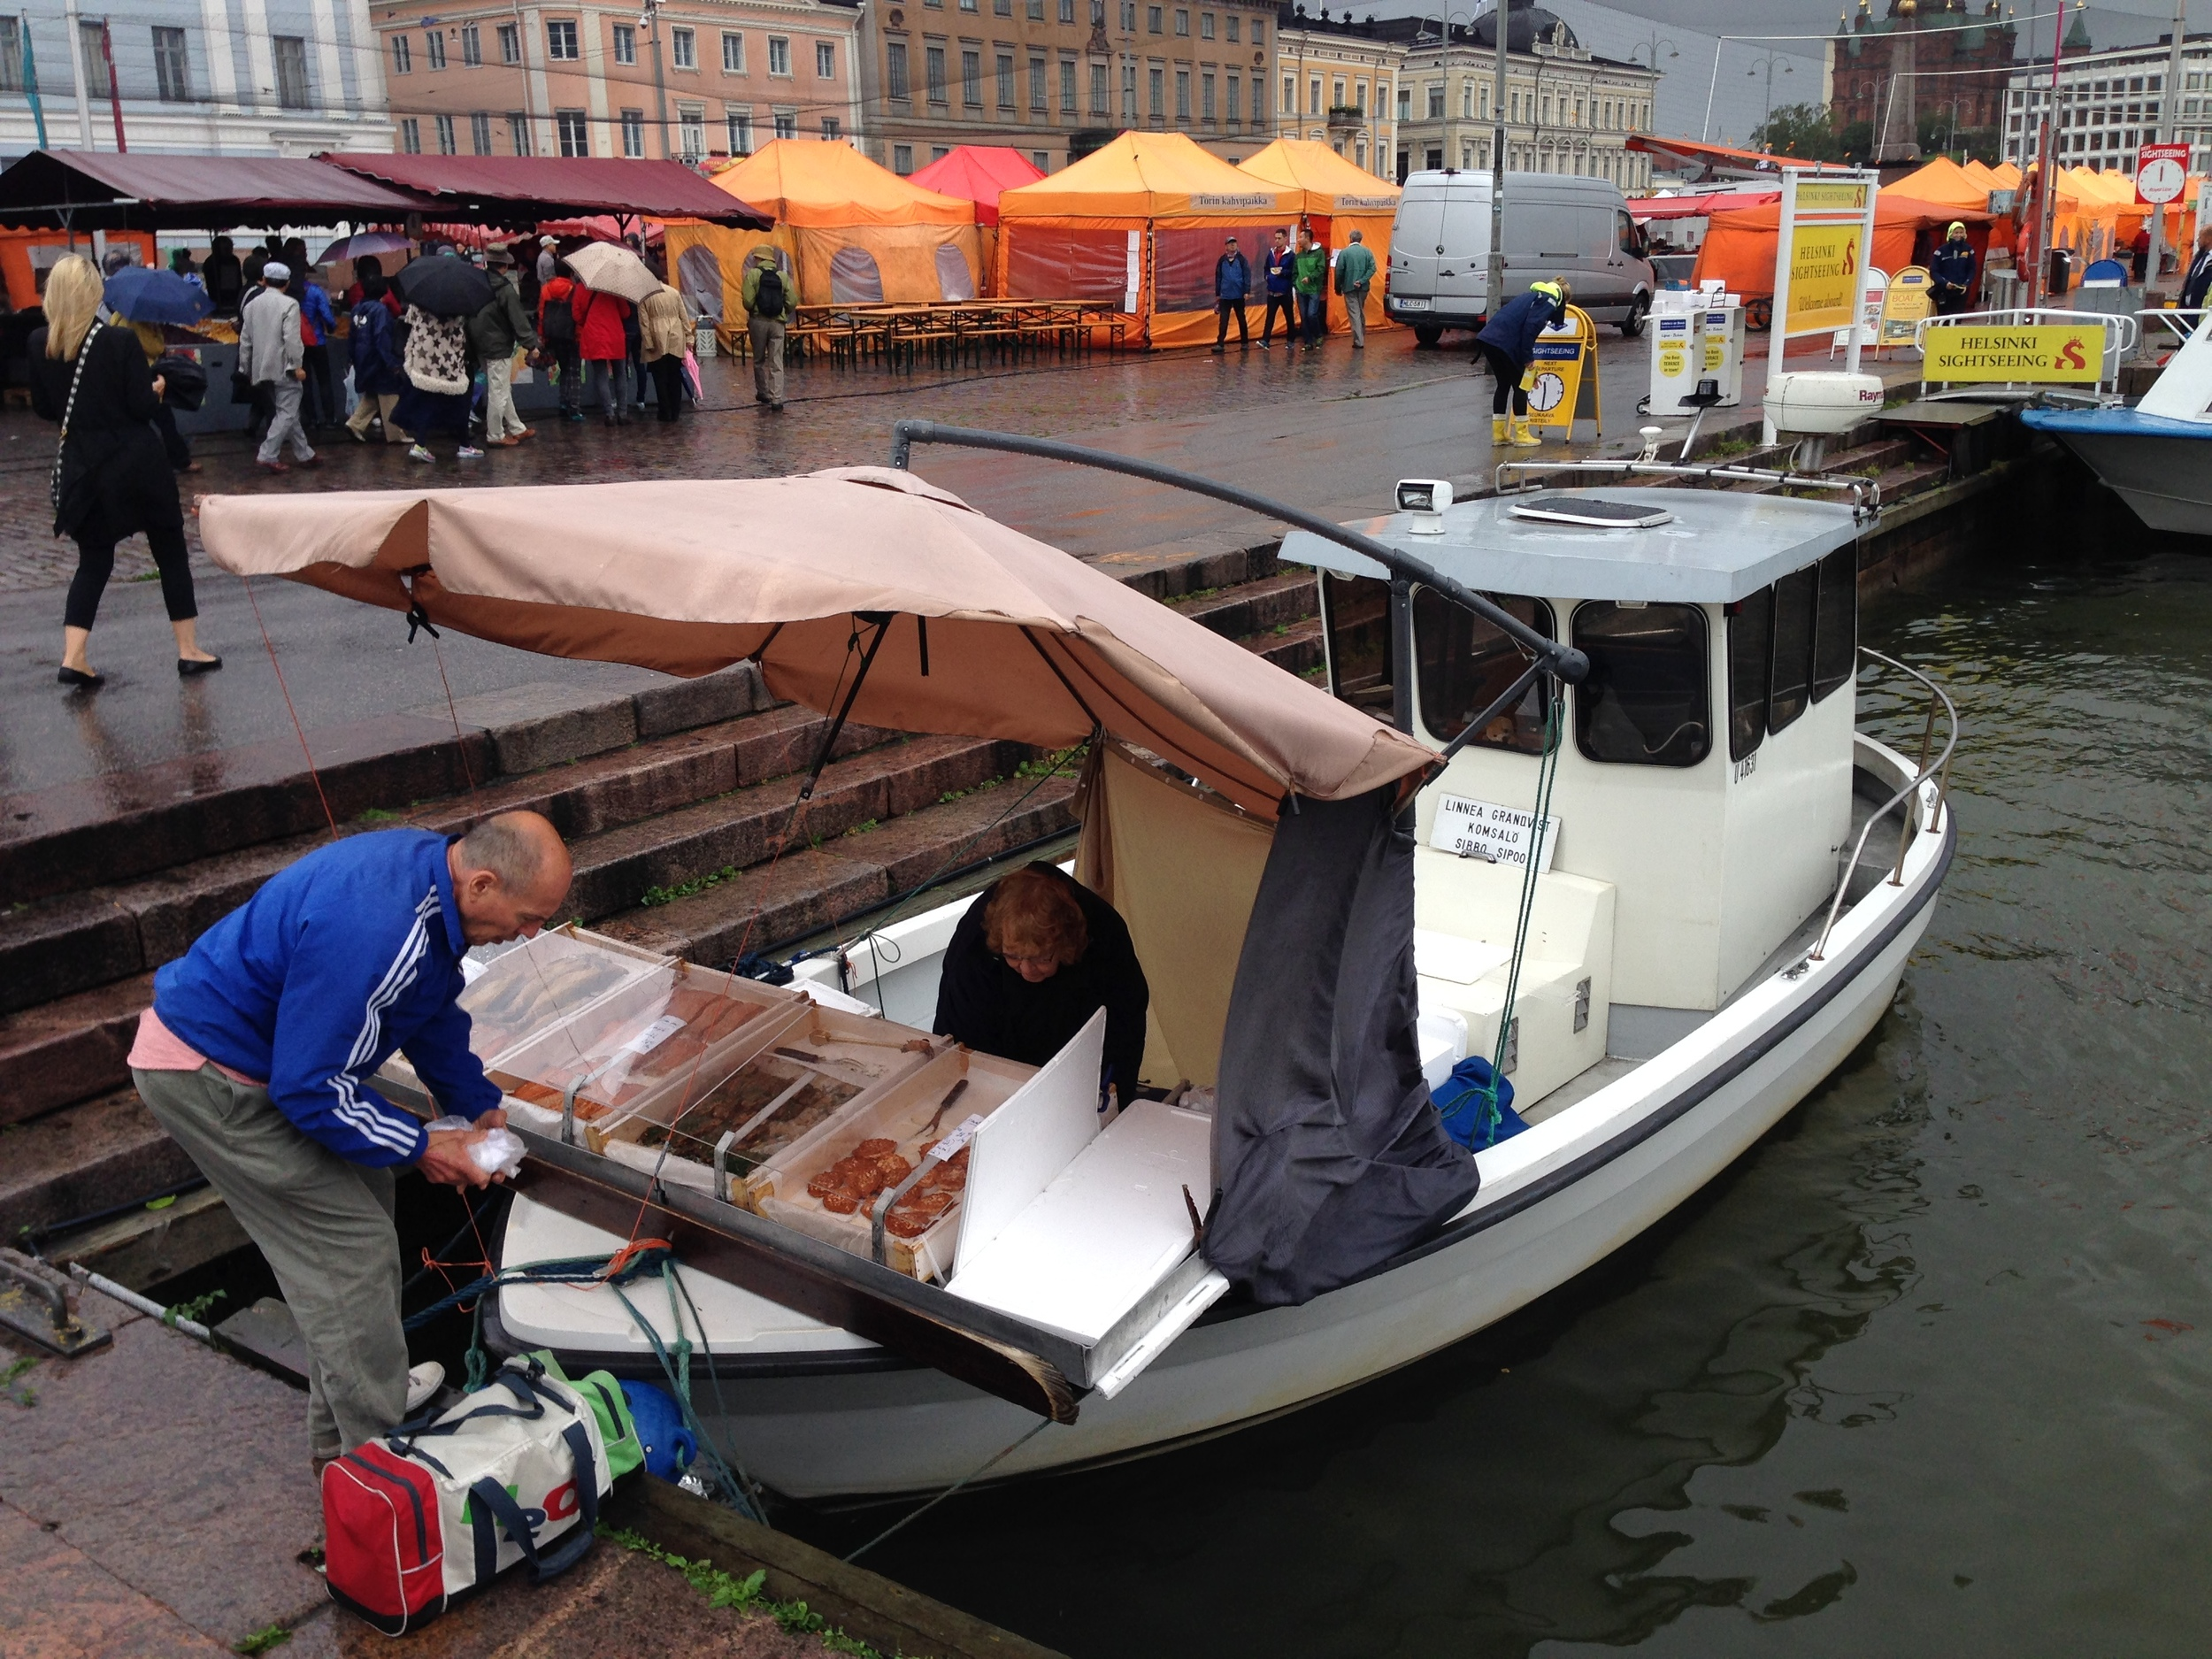 A fishmonger selling straight off the boat, while the rest of the market is visible on land in the background.